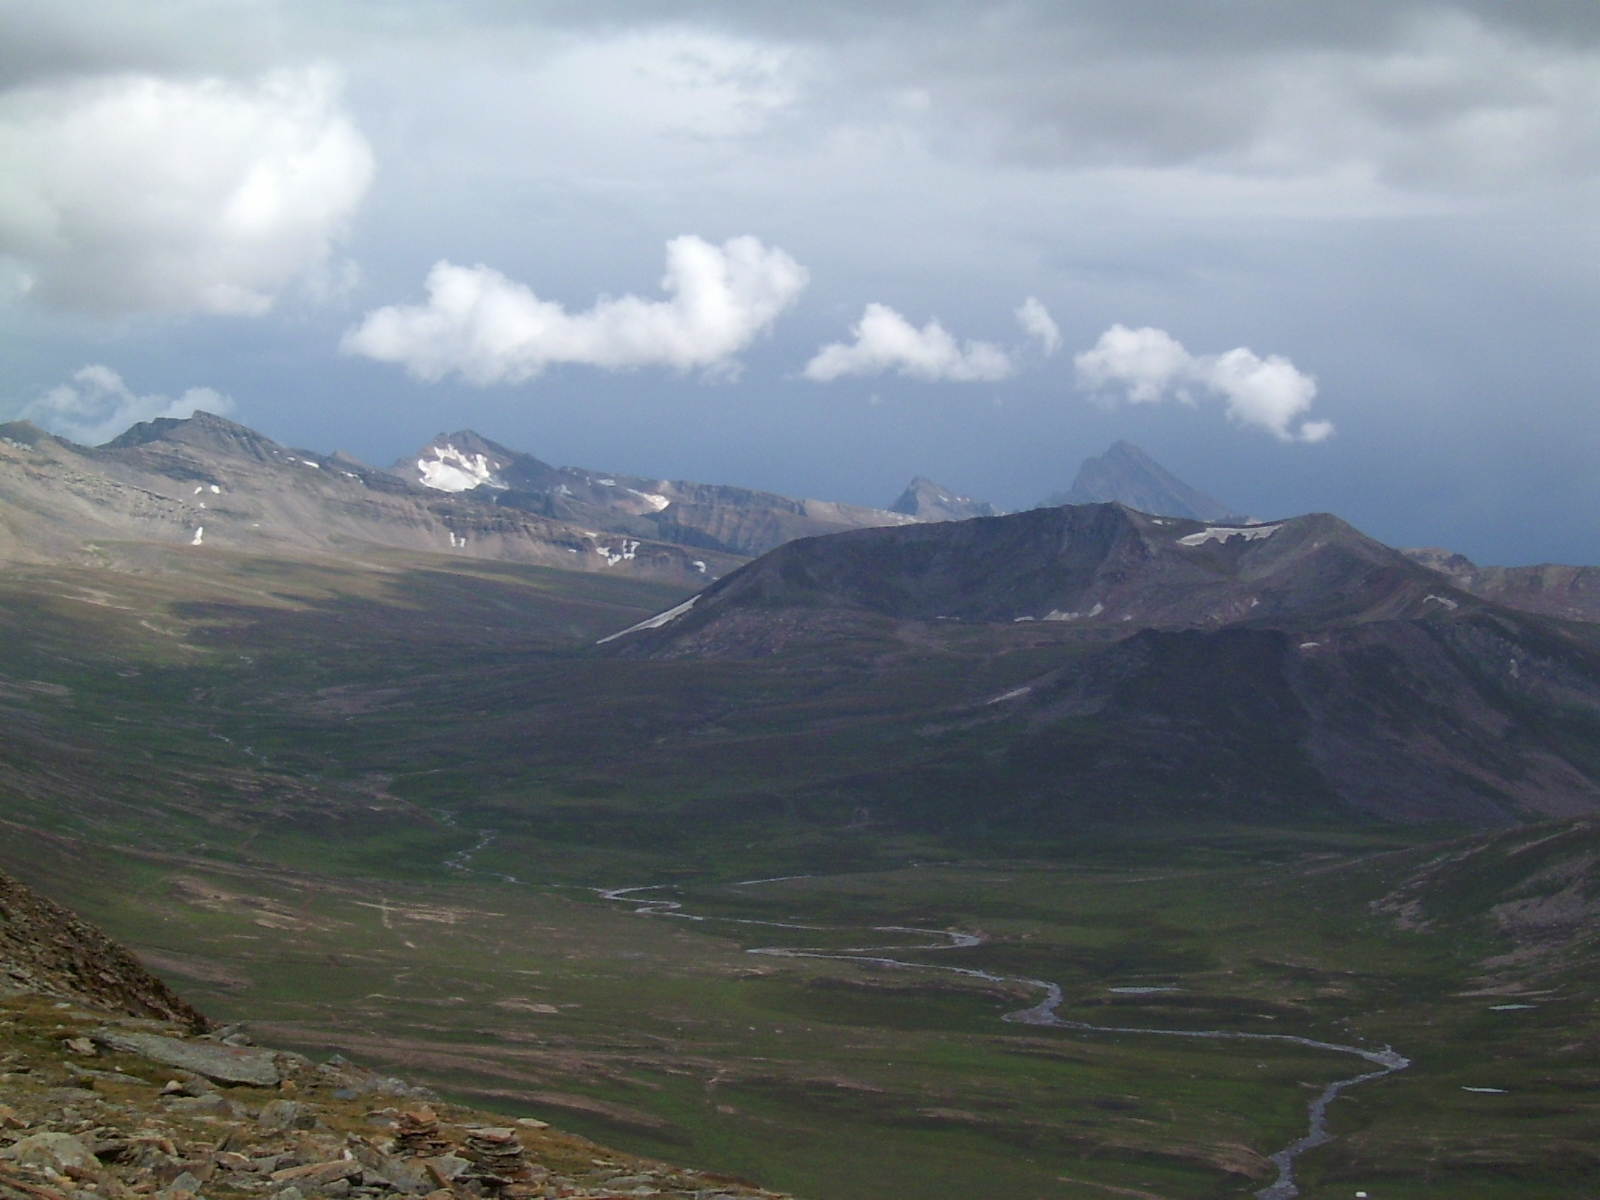 view from Top - Barbusar pass , Pakistan 4170m